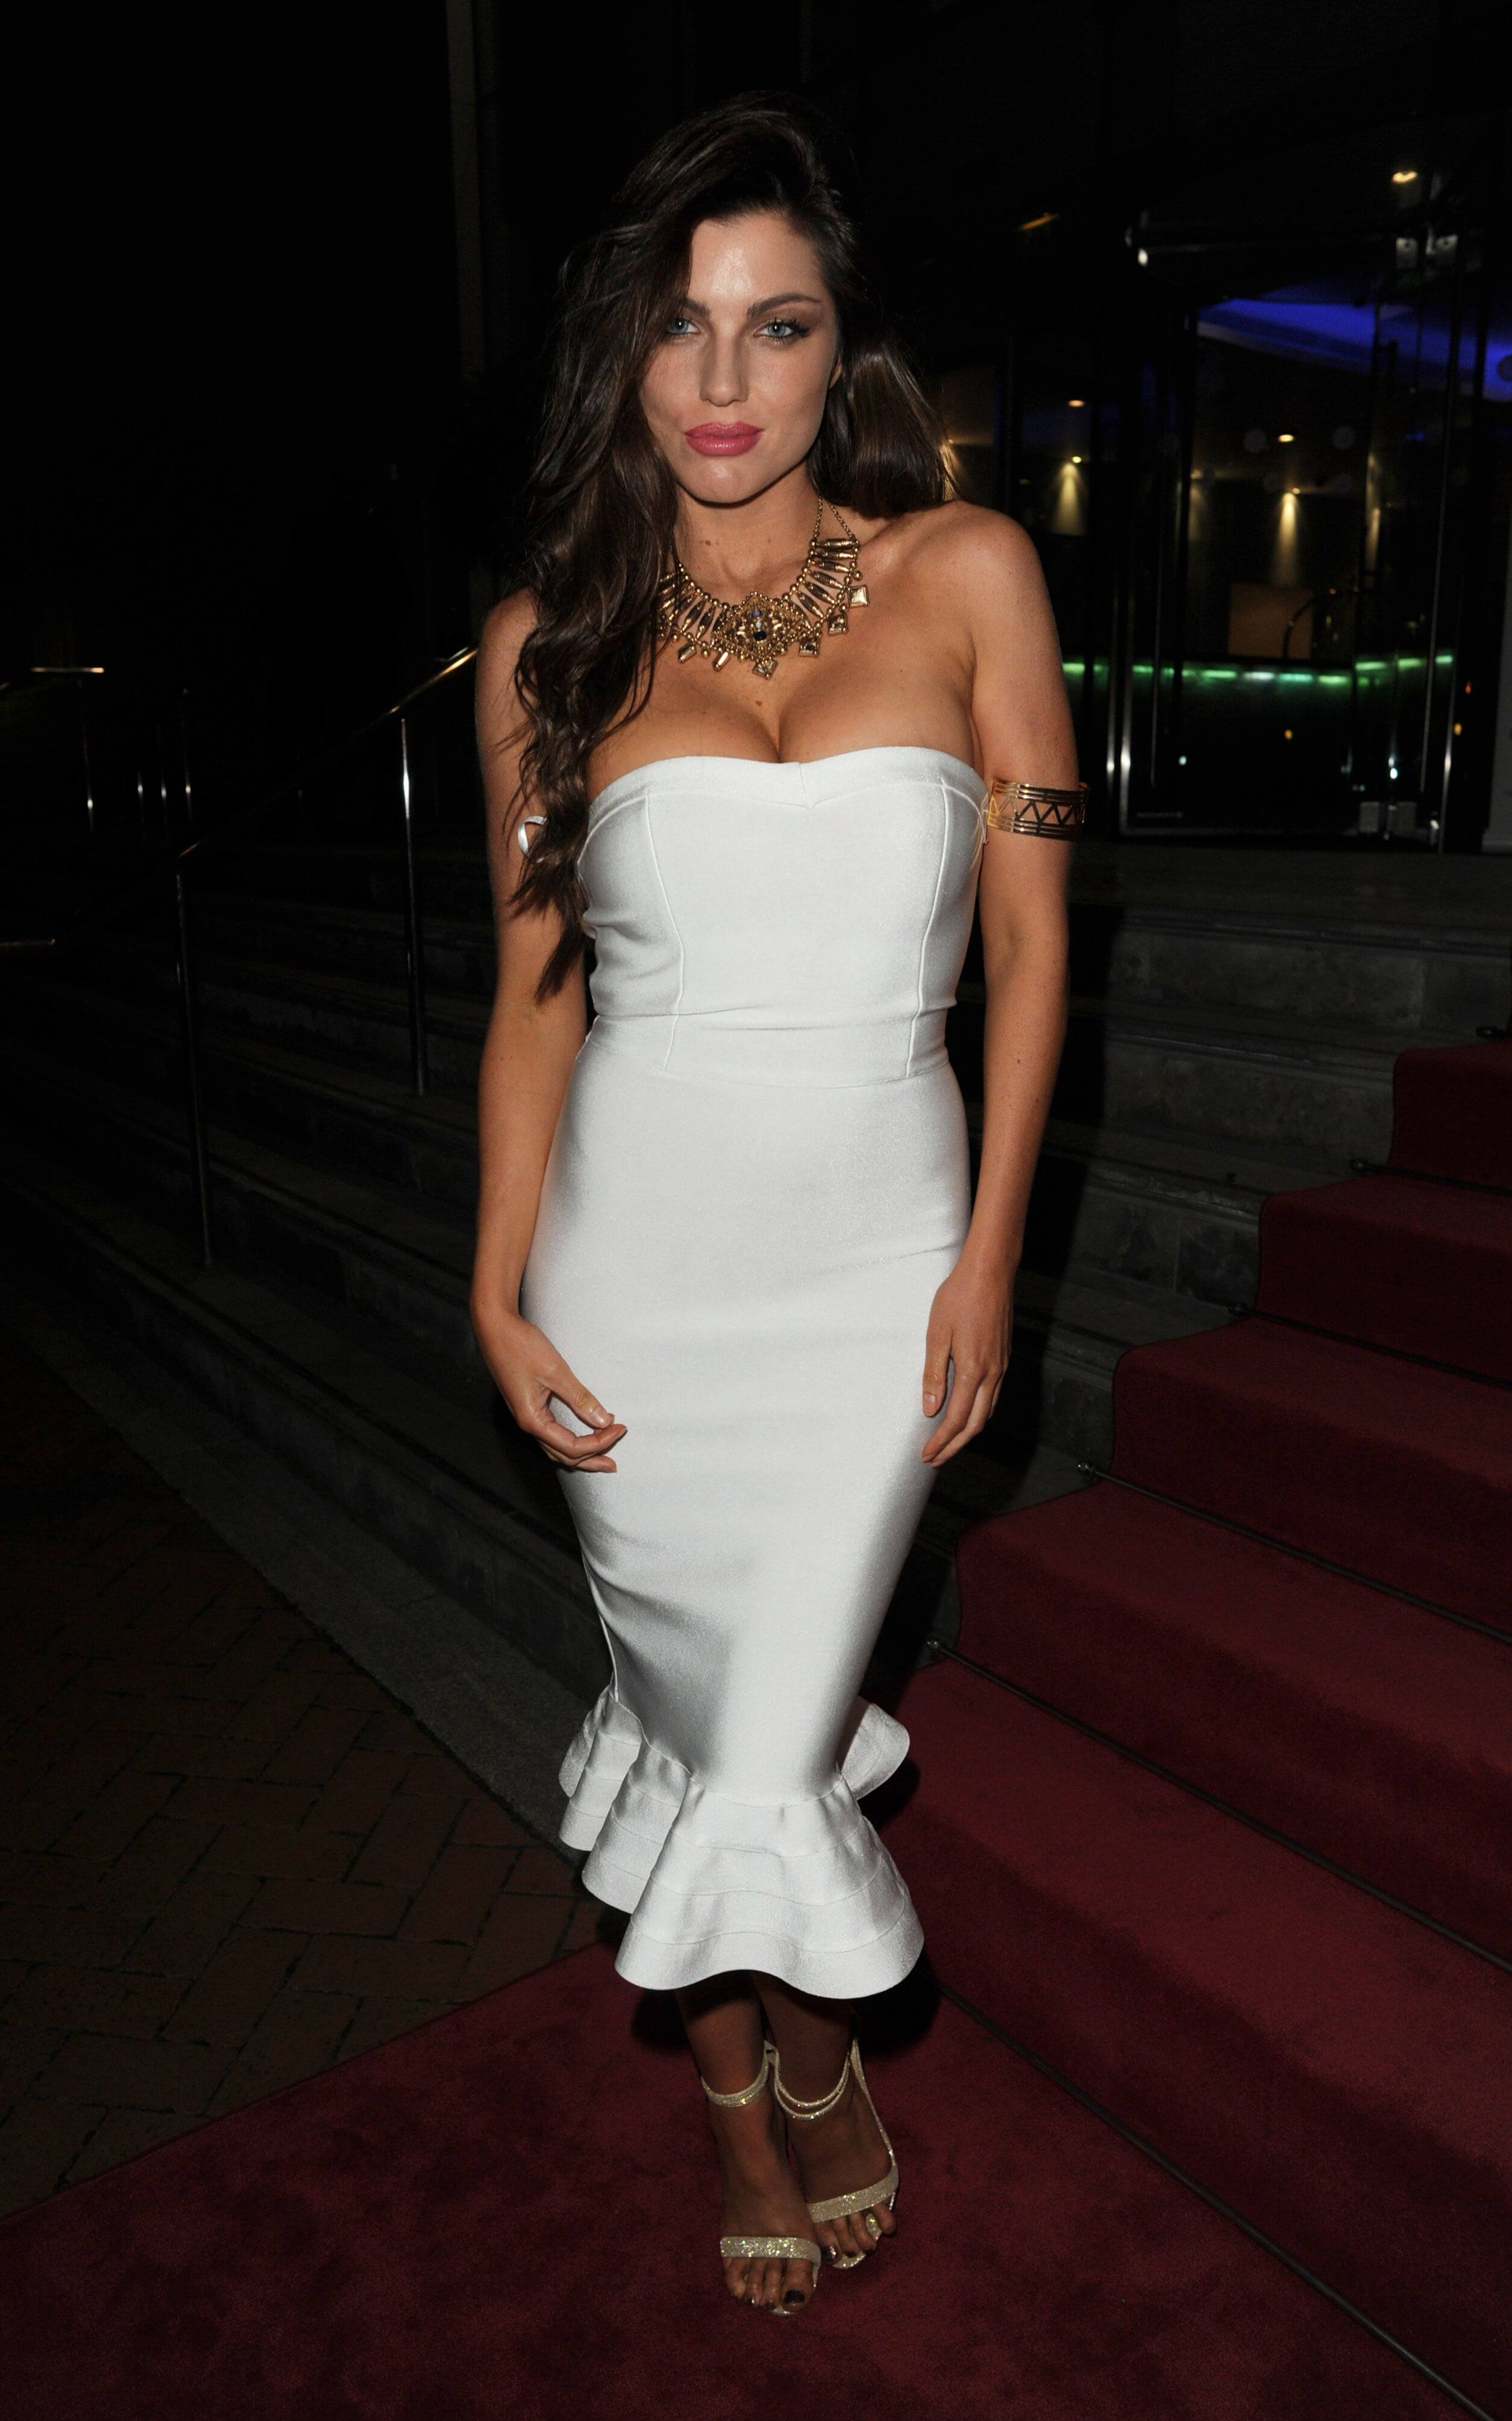 LOUISE CLIFFE hot white dress pic